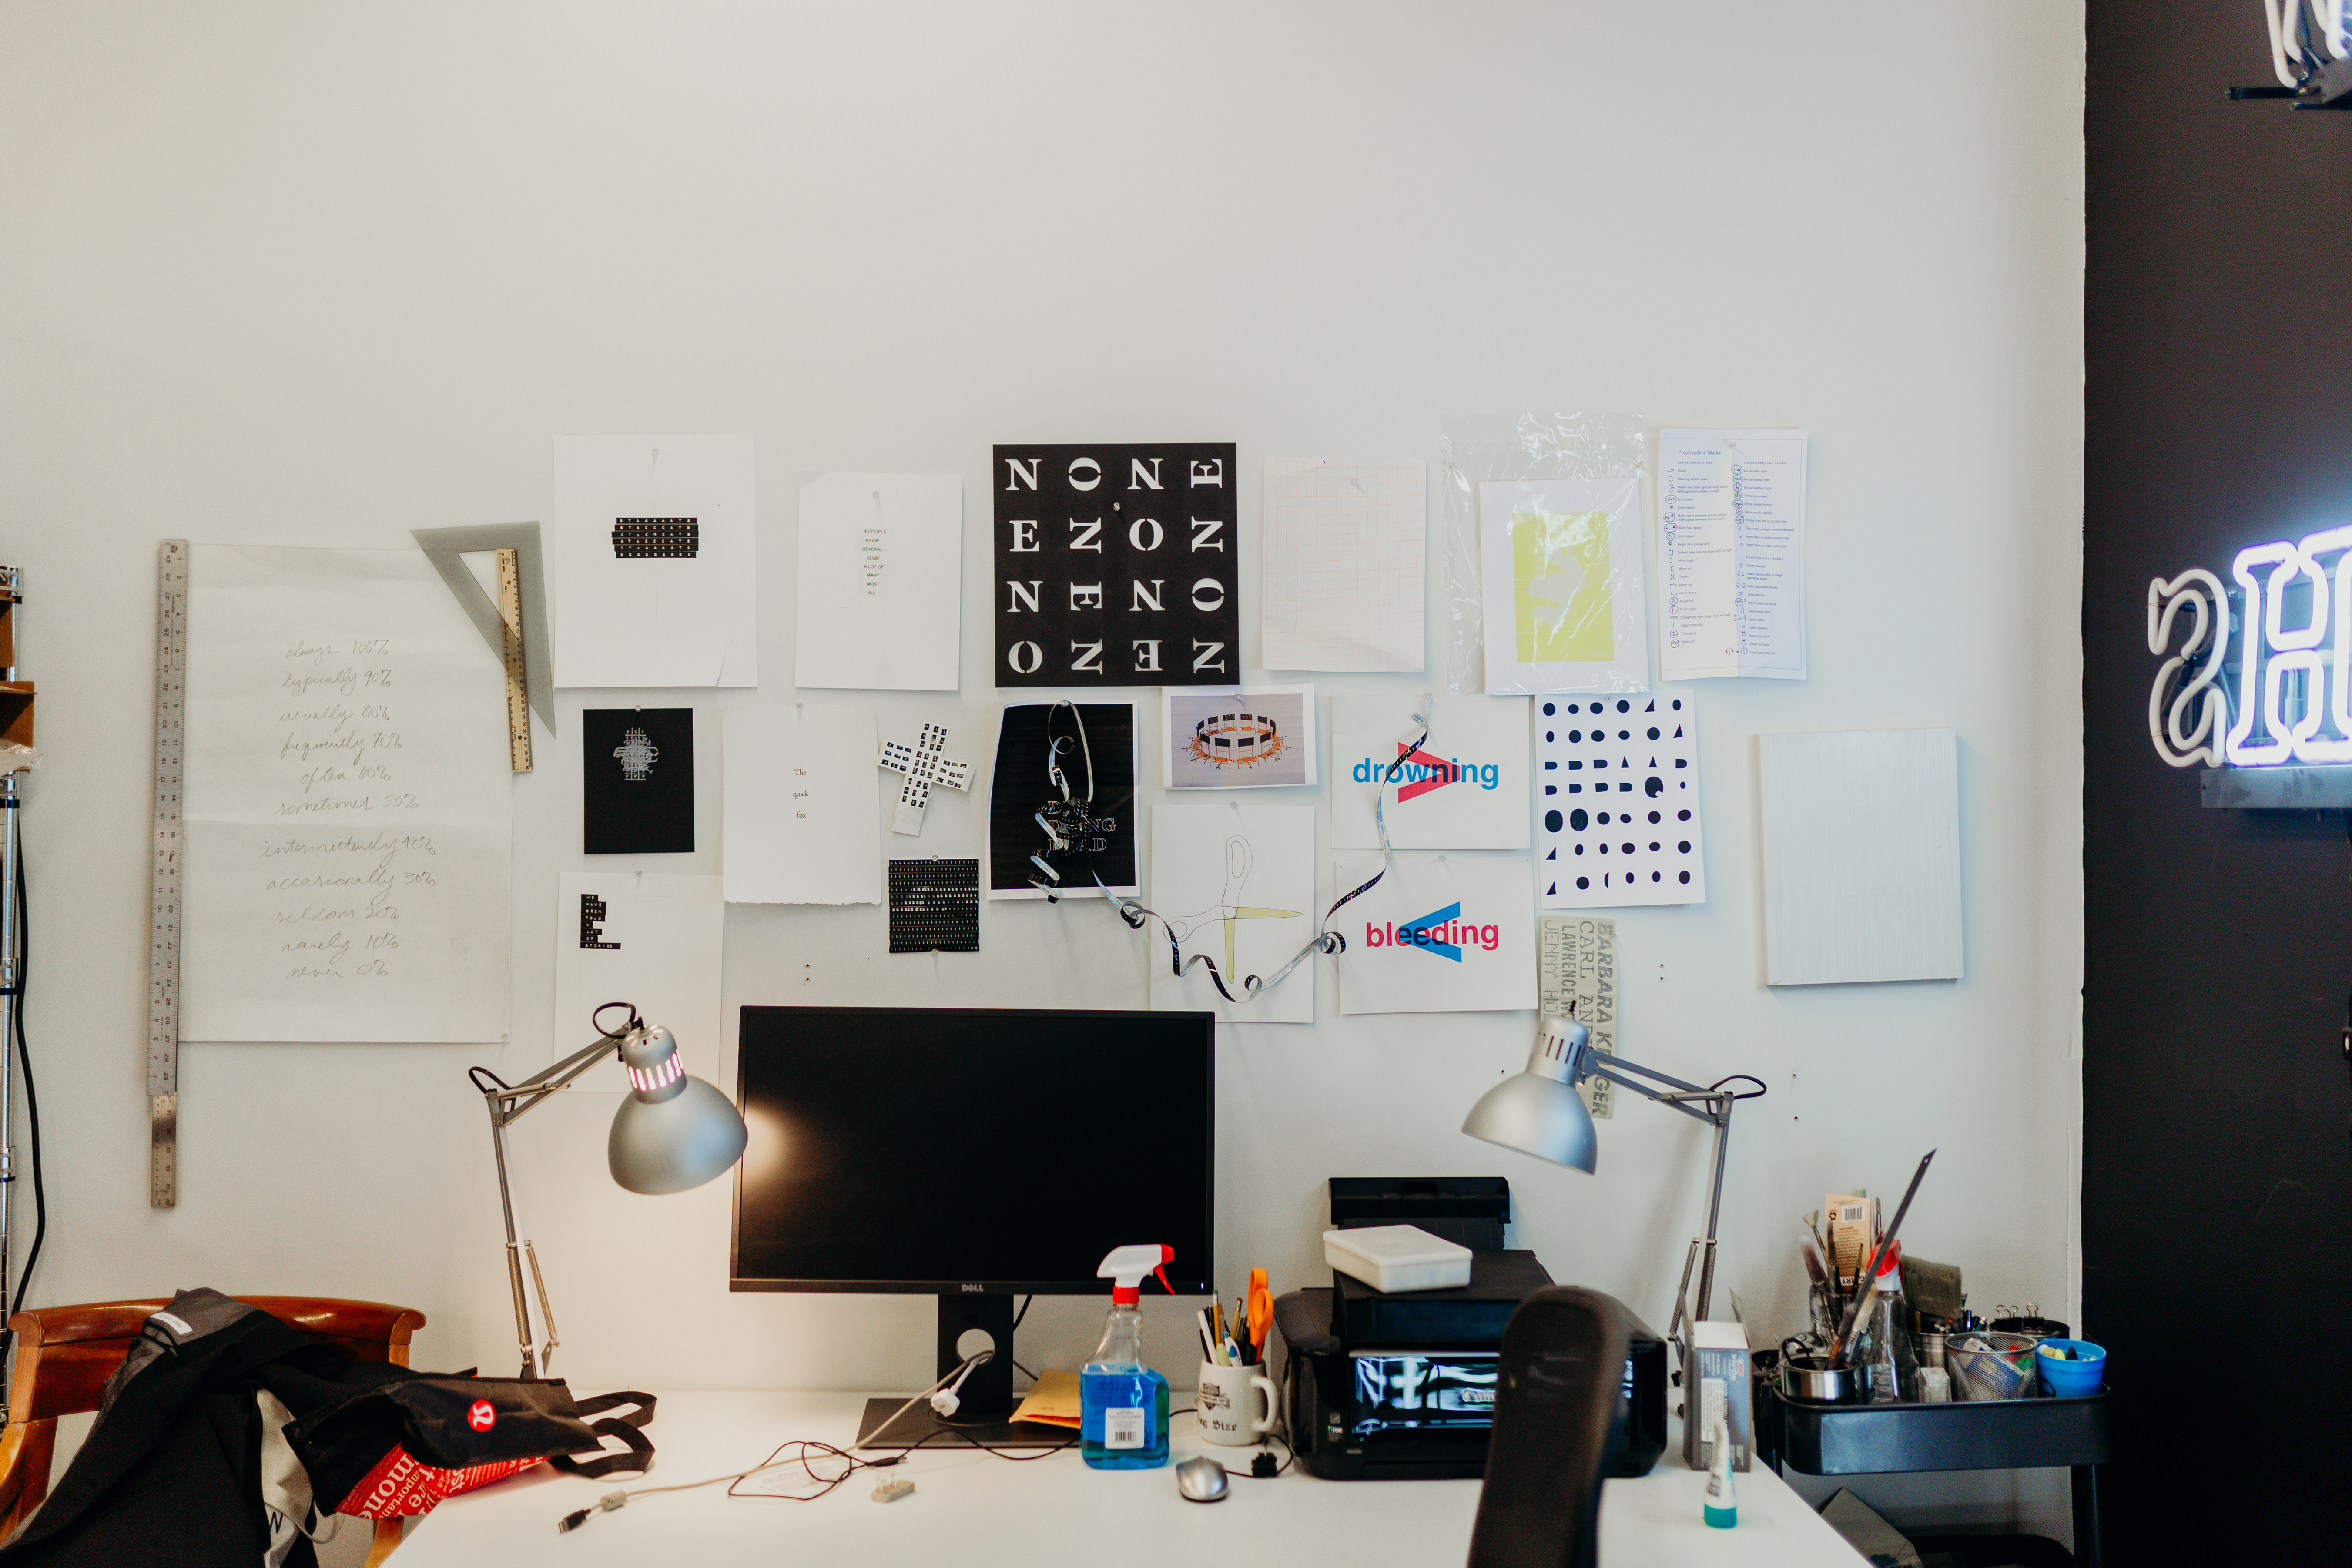 A desktop computer is on a white desk. On the wall are print outs and rulers. There is a neon sign hanging on the right wall which is painted black.